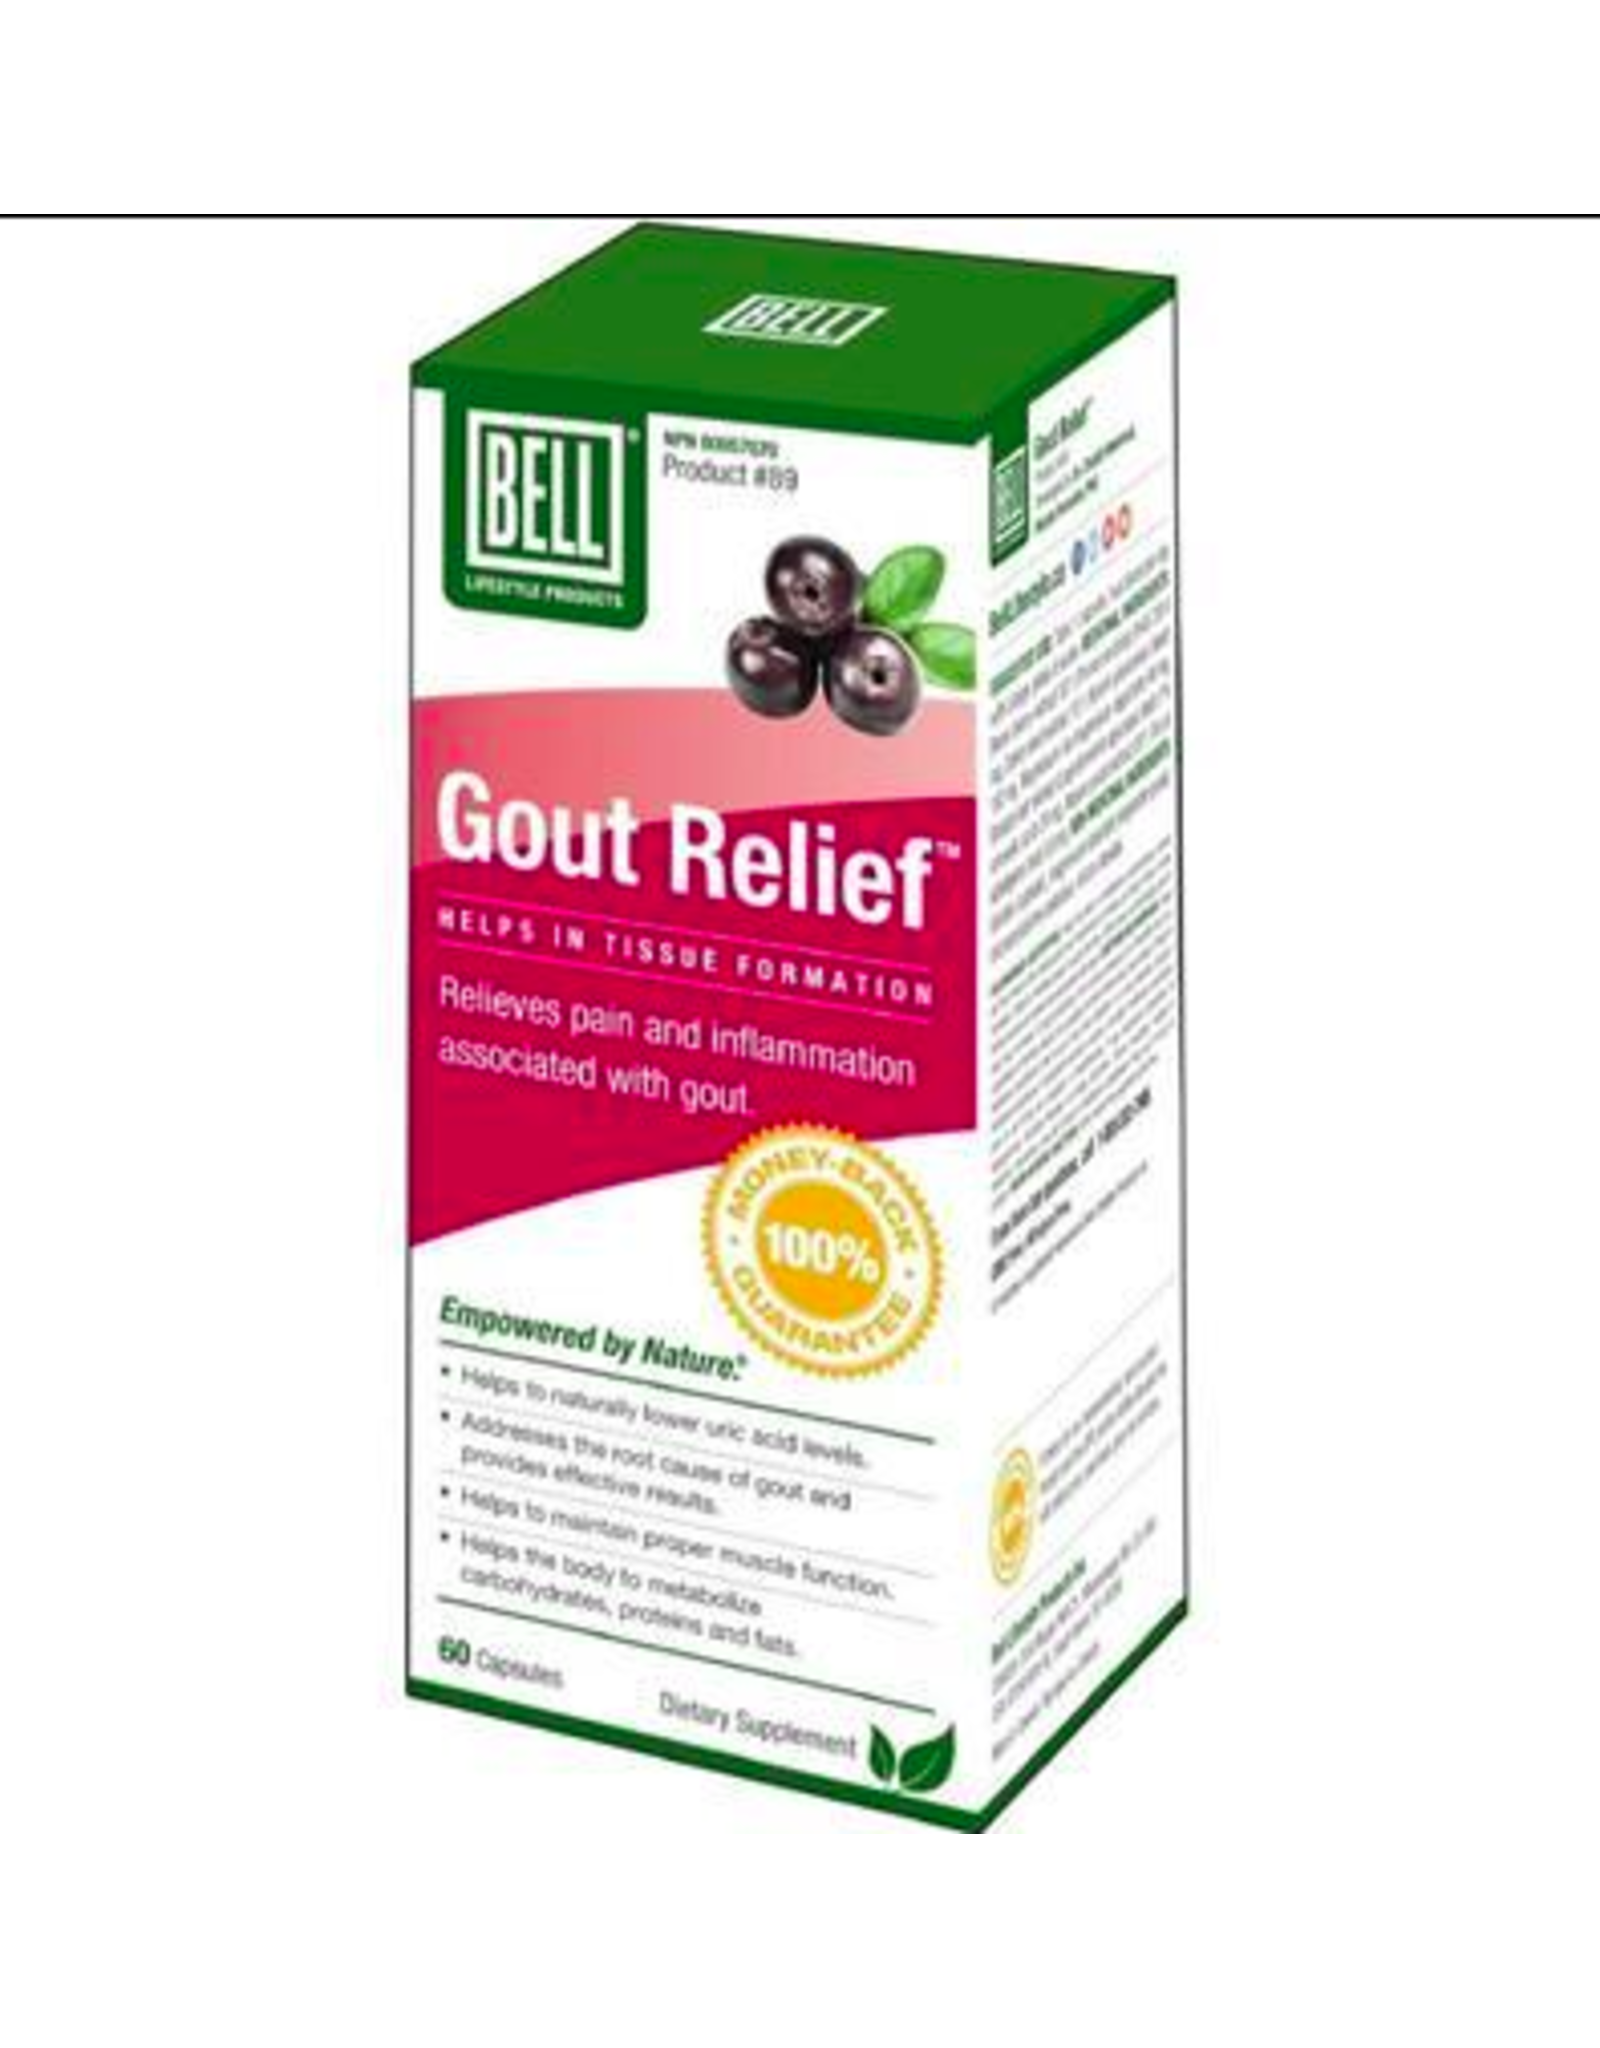 Bell Gout Relief